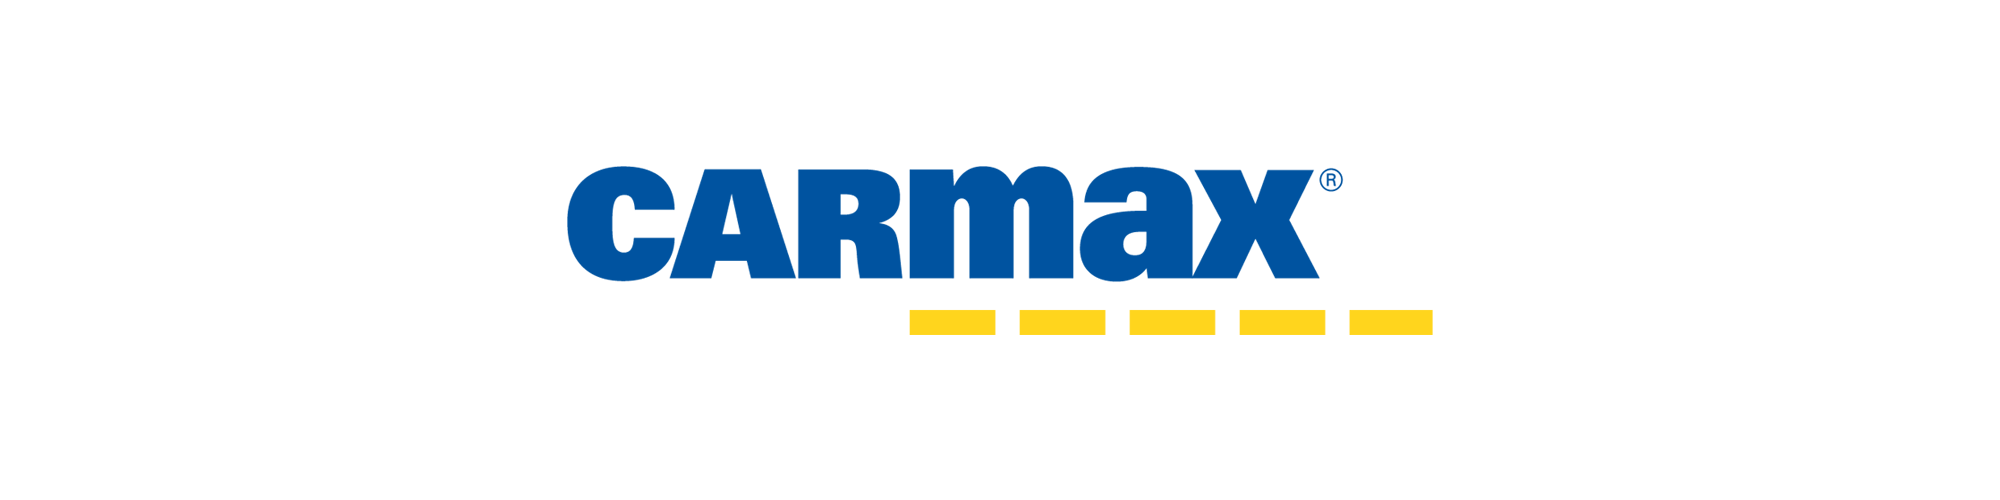 Apply for The CarMax Non-Profit Scholarship Program - Logo Carmax PNG